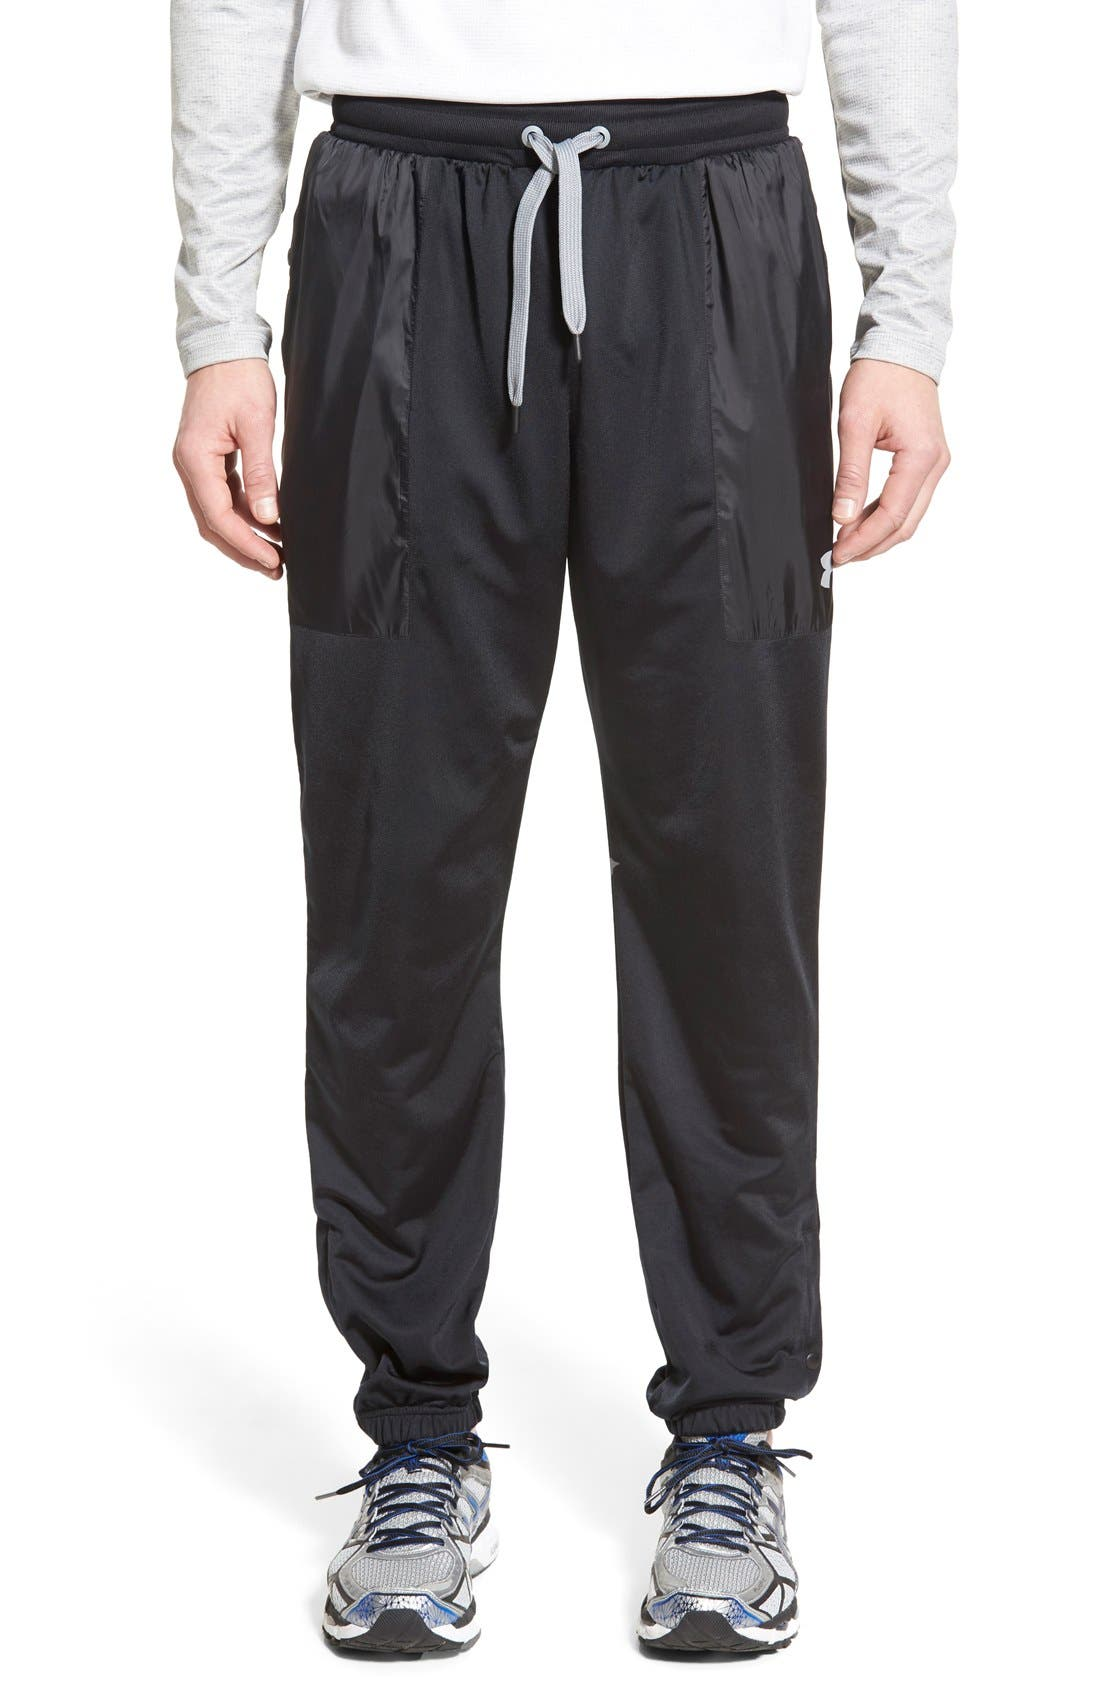 UNDER ARMOUR 'Diddy Bop' Moisture Wicking Training Pants, Main, color, 001